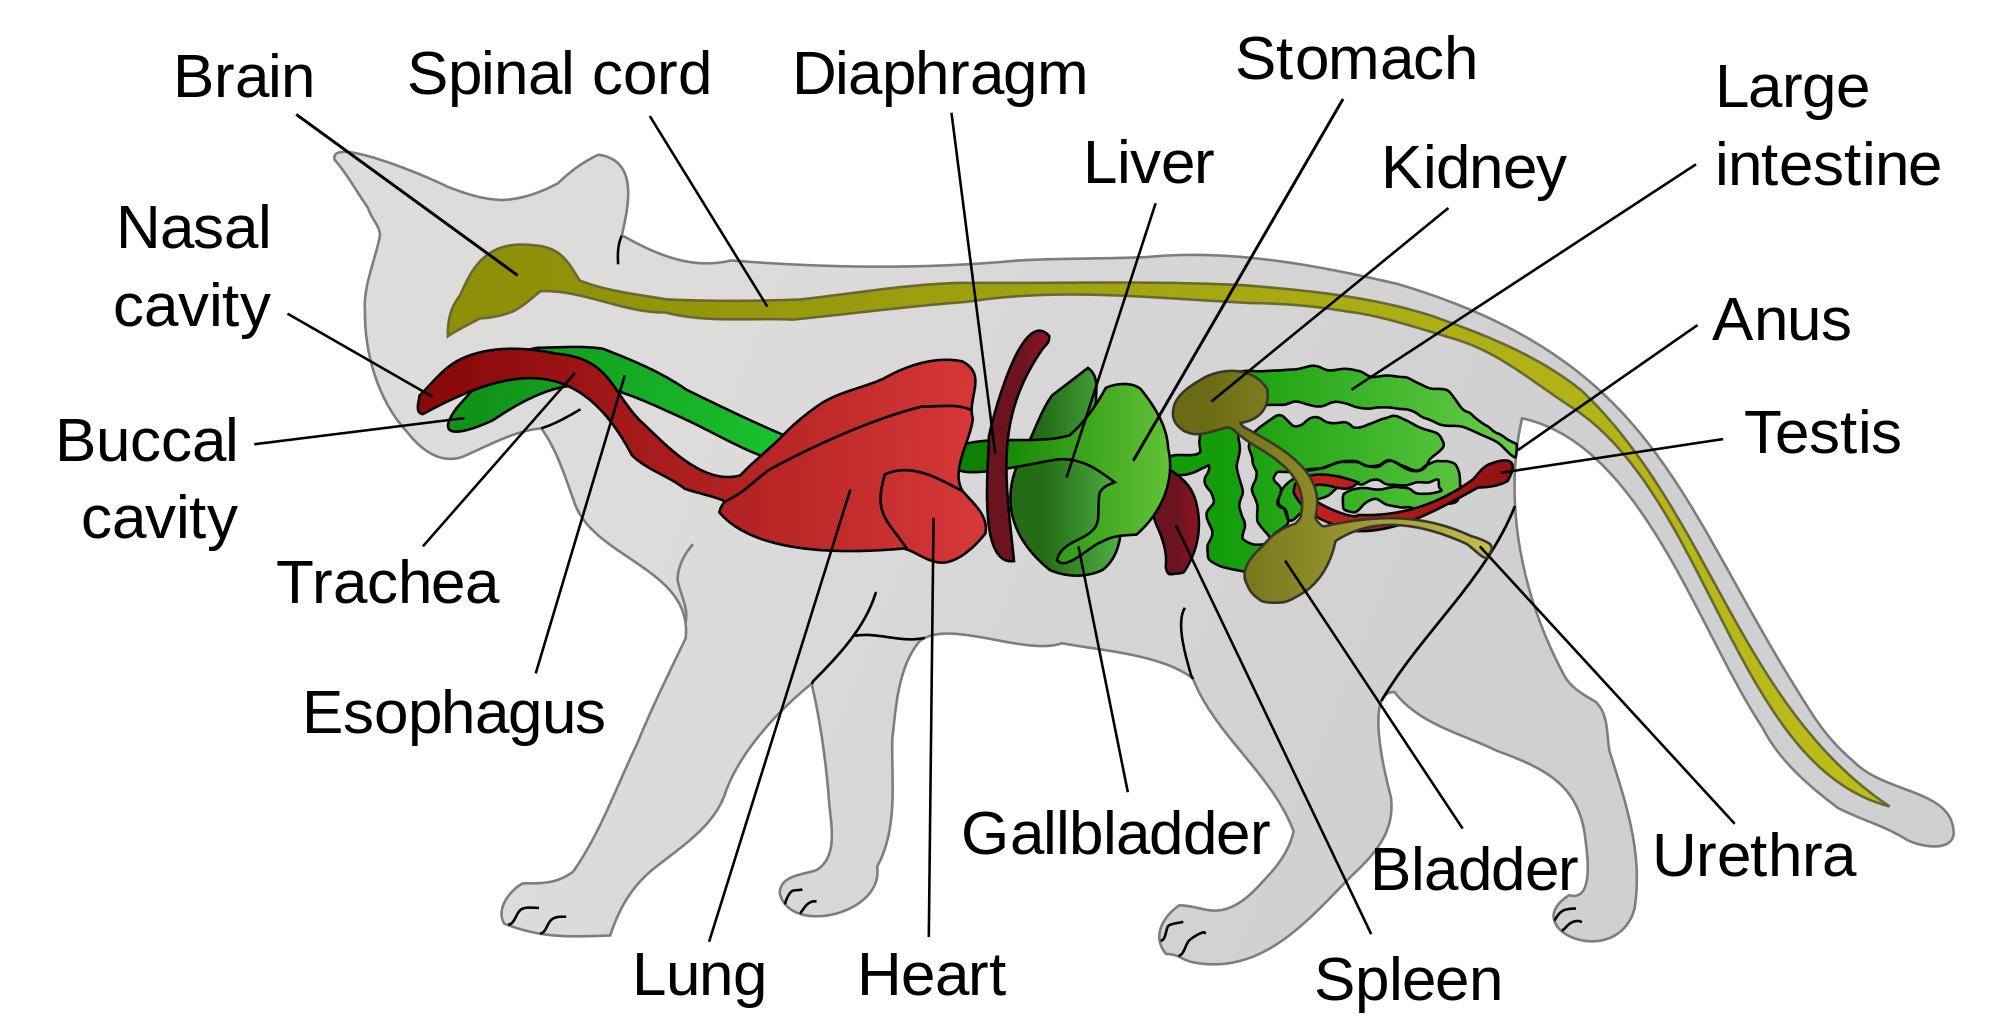 Cat anatomy clipart image freeuse download Anatomy Of A Cat Diagram – Lifeinharmony image freeuse download